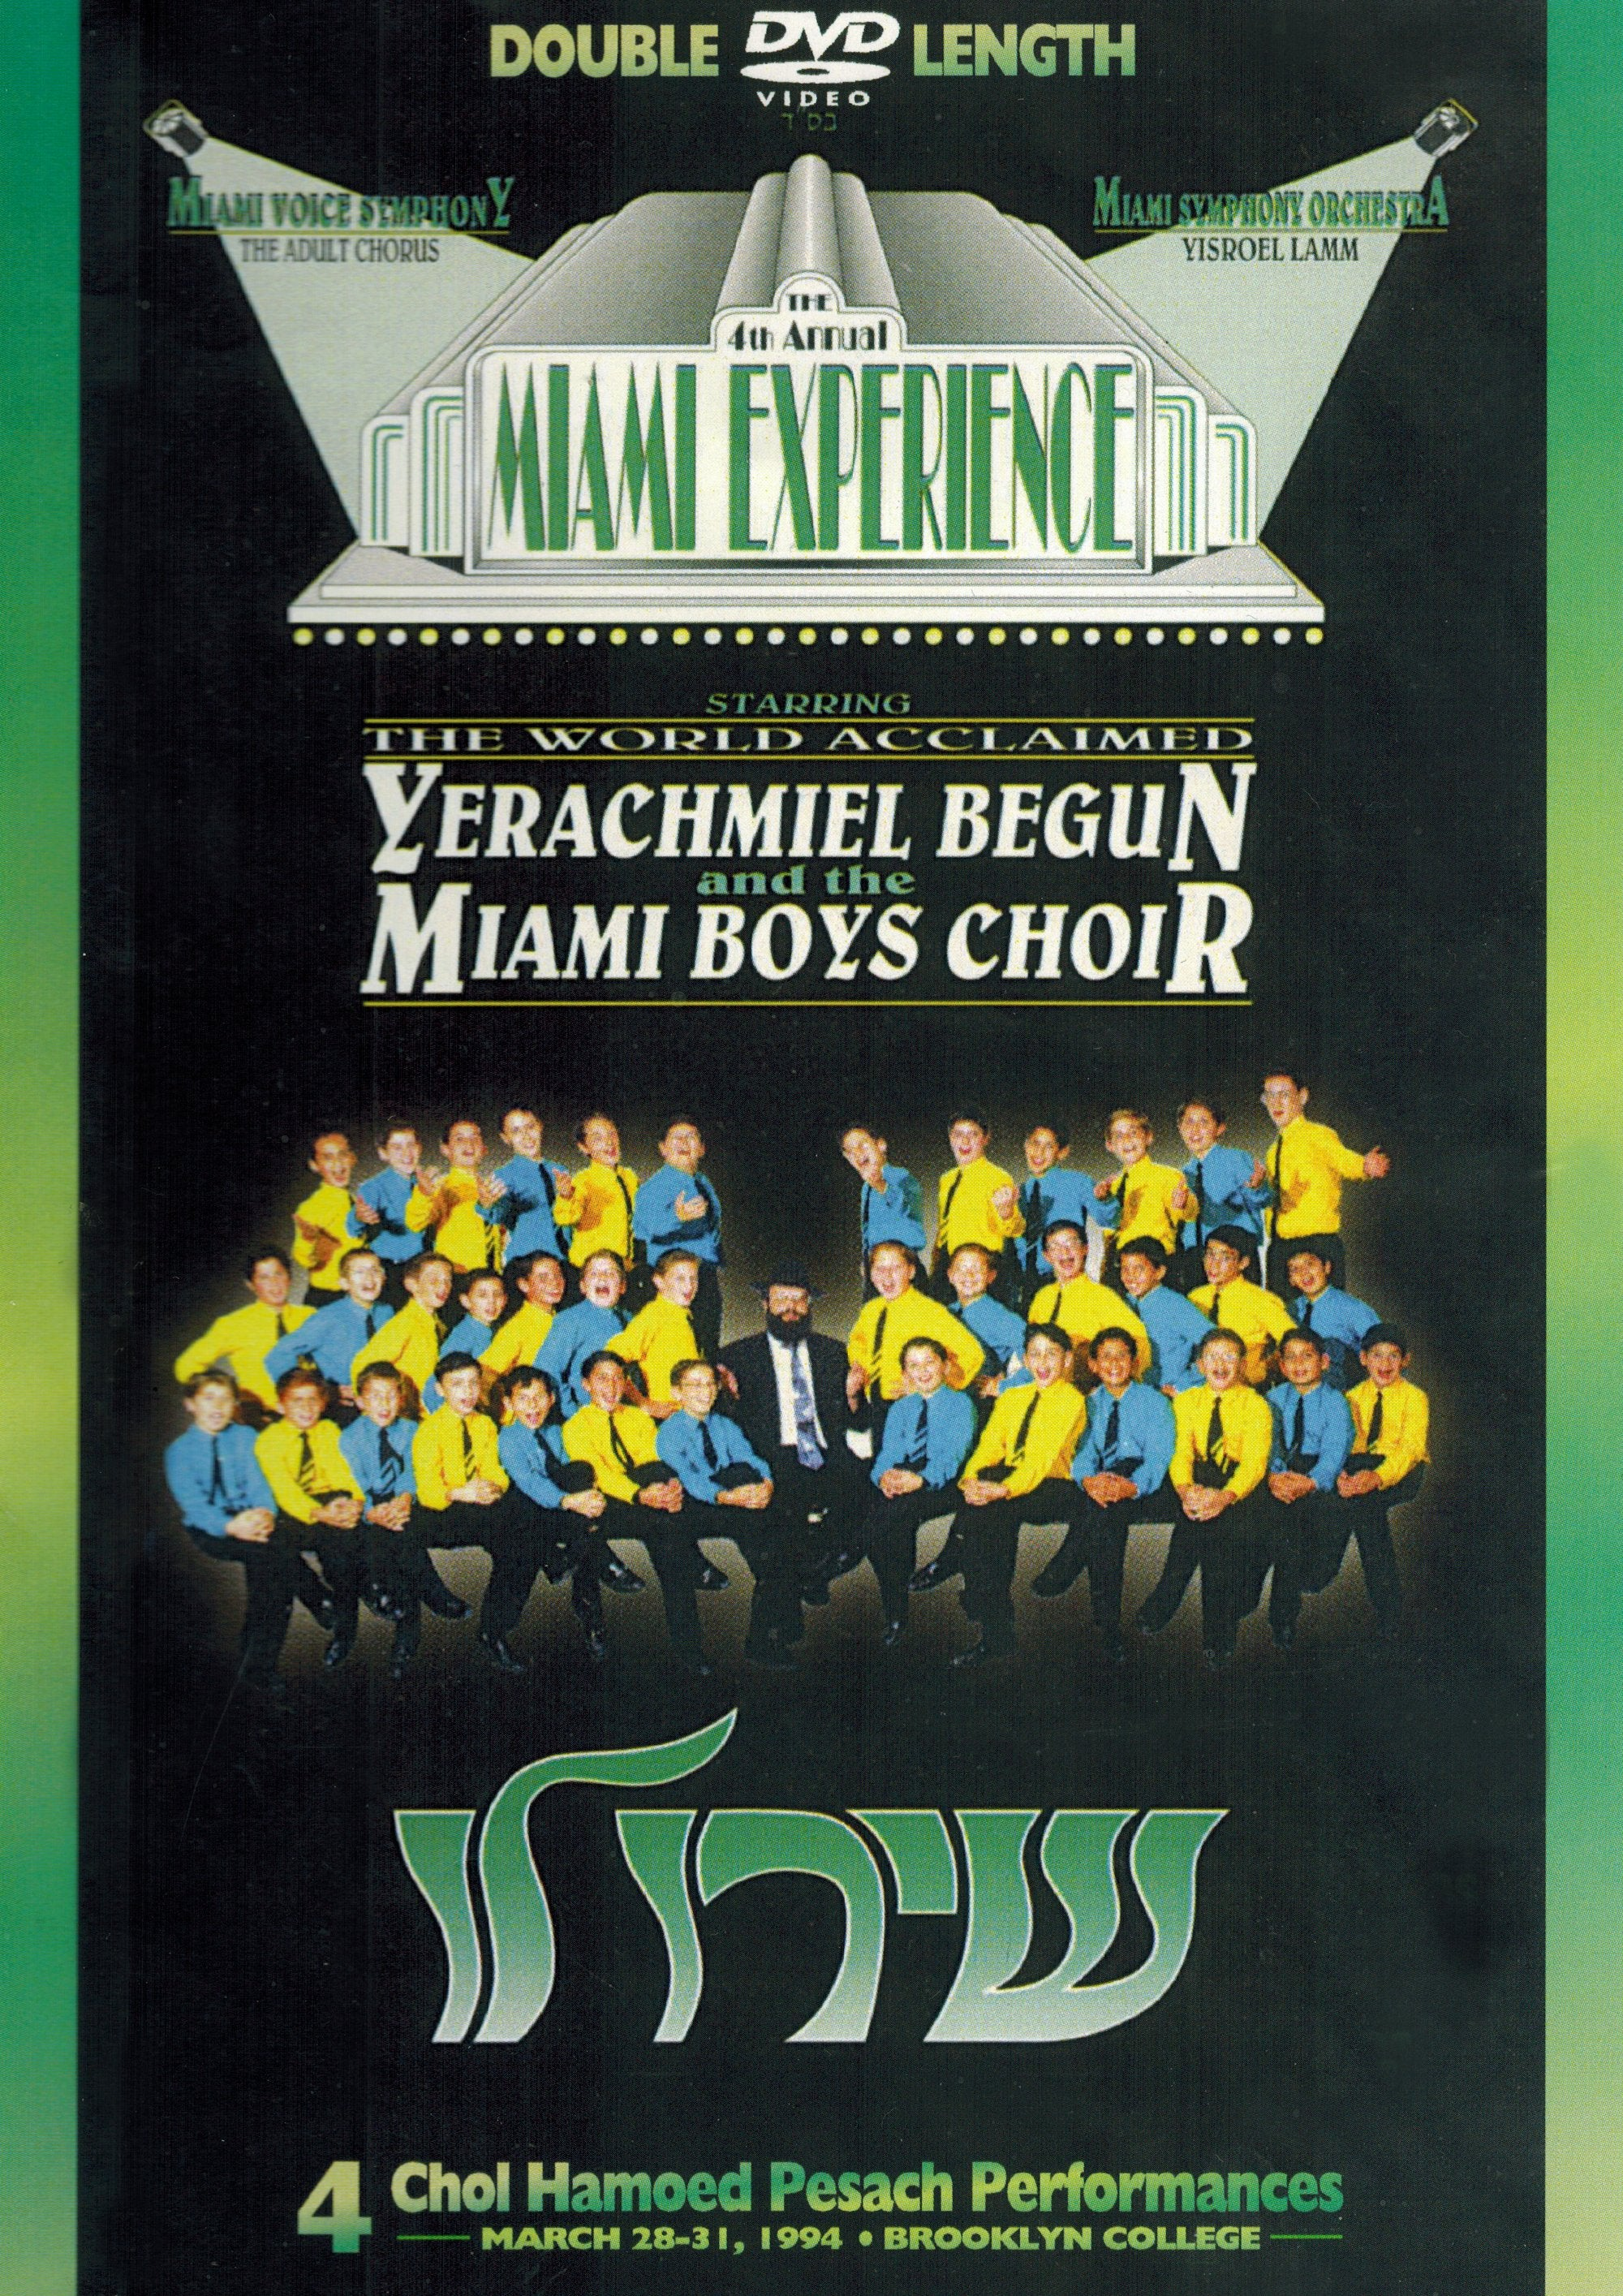 Miami Experience 4 - Shiru Lo 1994 (Video)